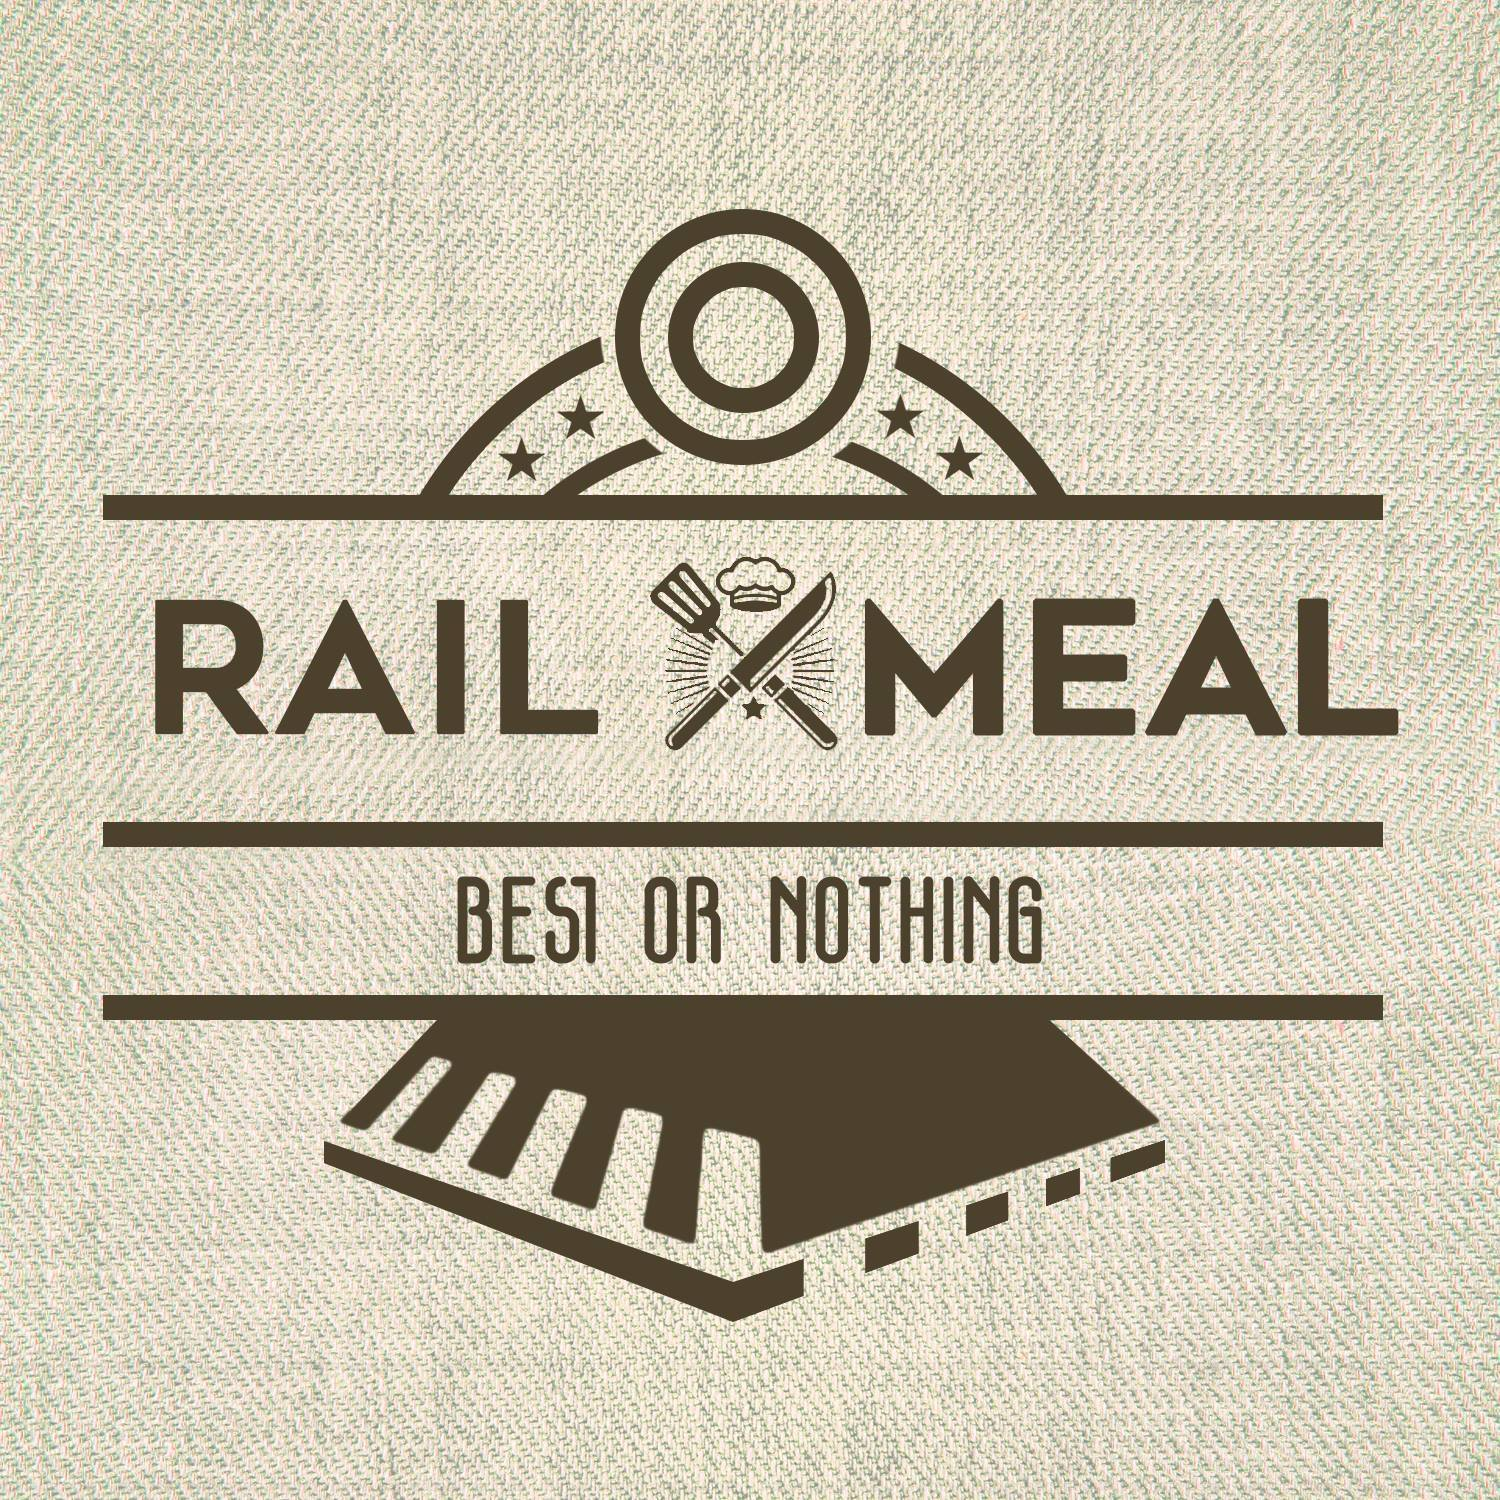 RAILMEAL.co